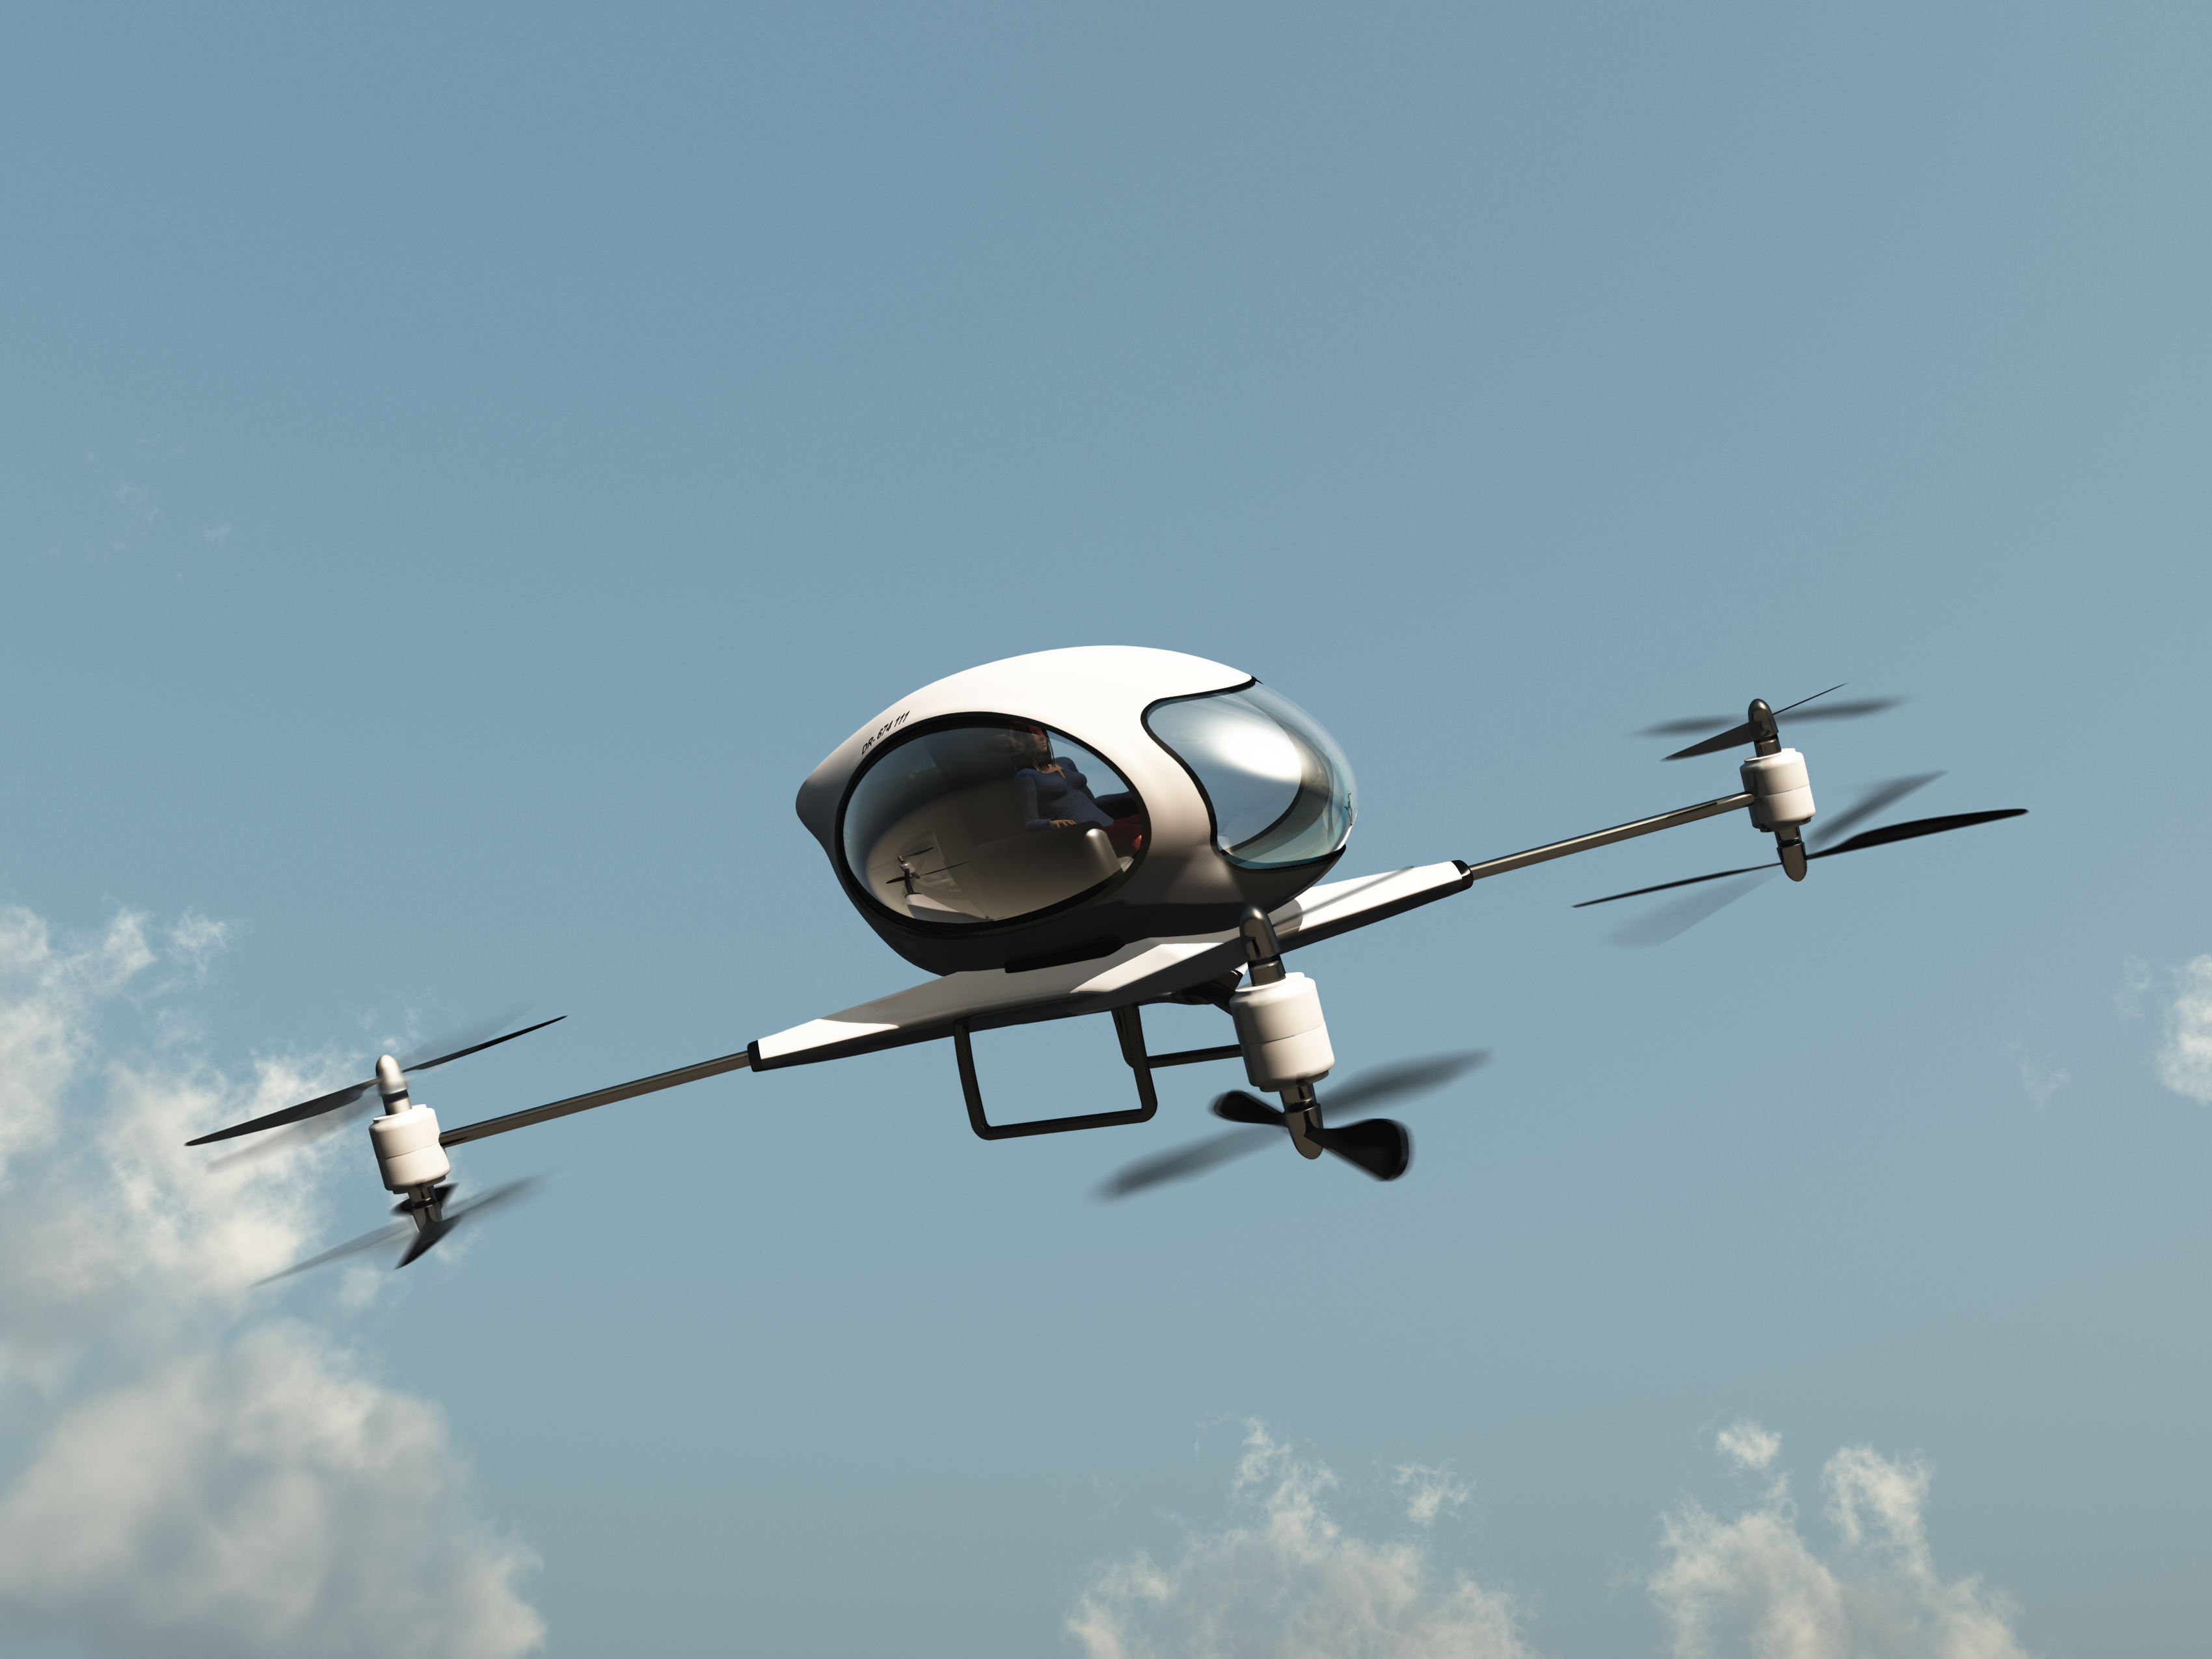 Best Car For Uber >> Uber is Planning Self-Flying Drone Taxis | National News | US News